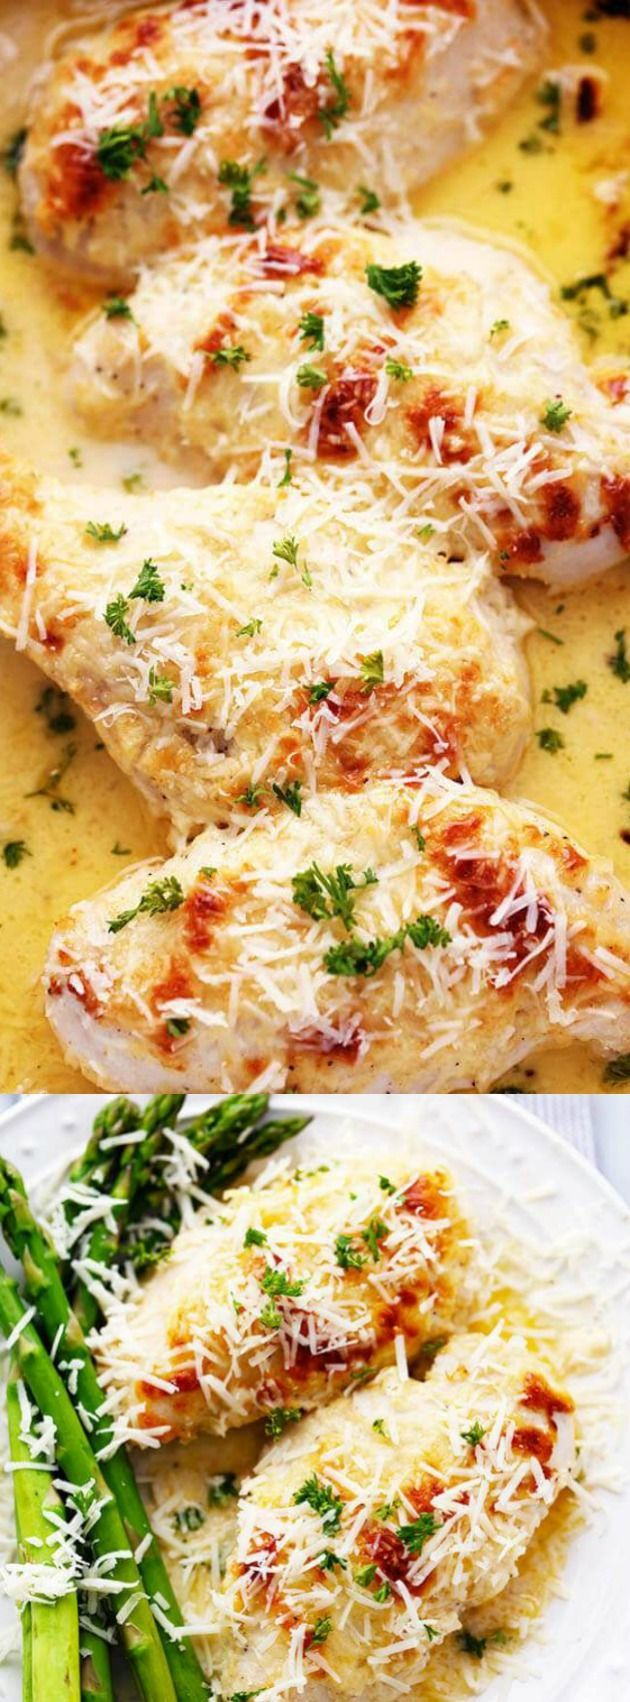 This amazingly delicious Creamy Baked Asiago Chicken from The Recipe Critic comes together quickly and will become a new family favorite dinner recipe! The asiago cheese sauce tastes amazing and even the pickiest of eaters will lick their plates clean.